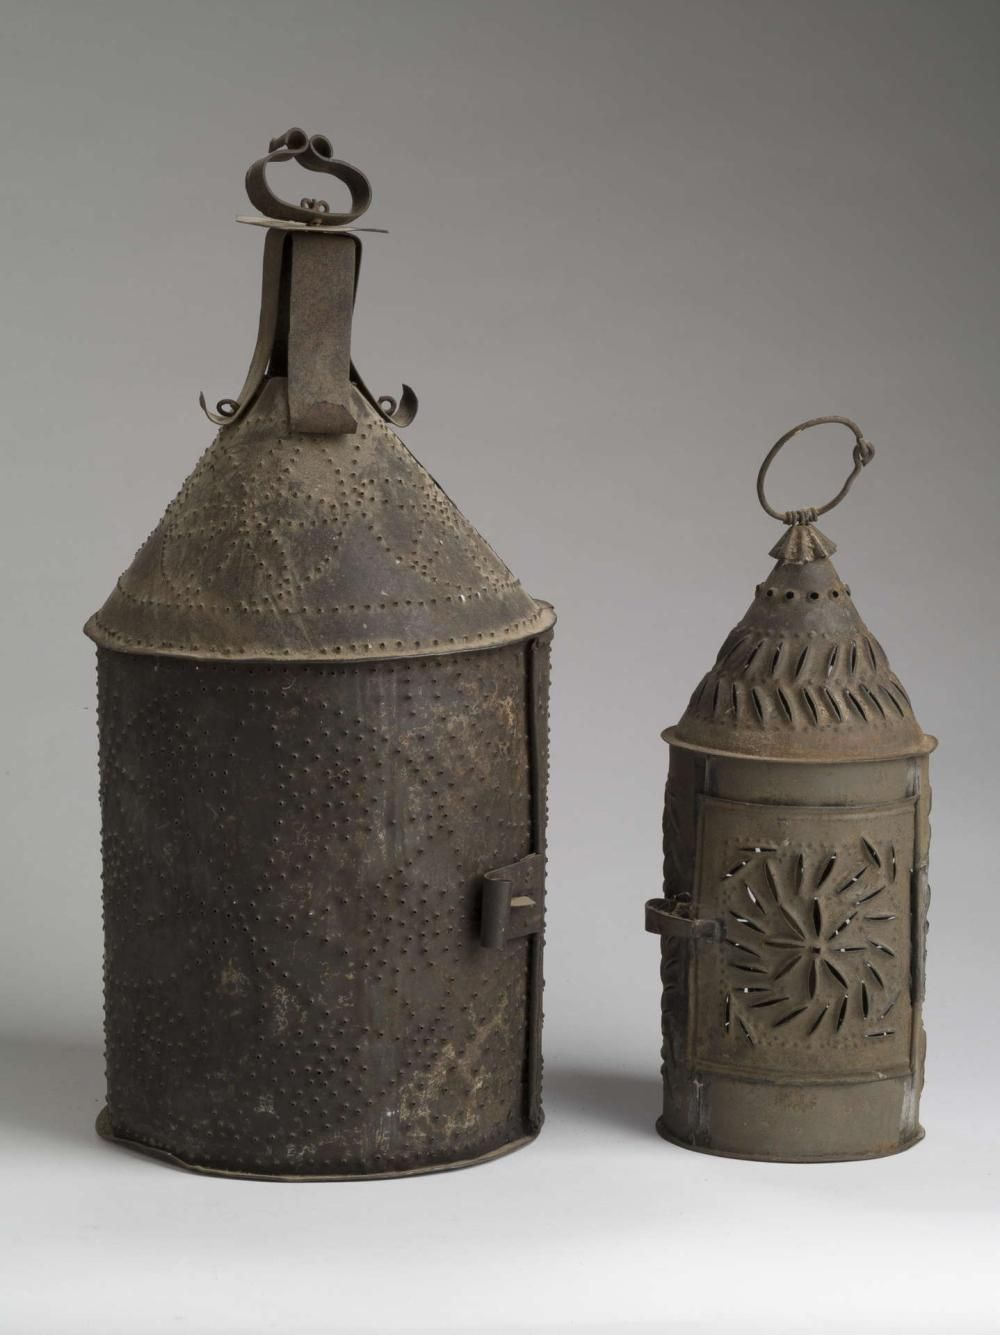 Buy Online View Images And See Past Prices For Two Unusual Punched Tin Single Light Lanterns Early Nineteenth Century Invaluable In 2020 Primitive Lighting Antique Lanterns Rustic Lamps